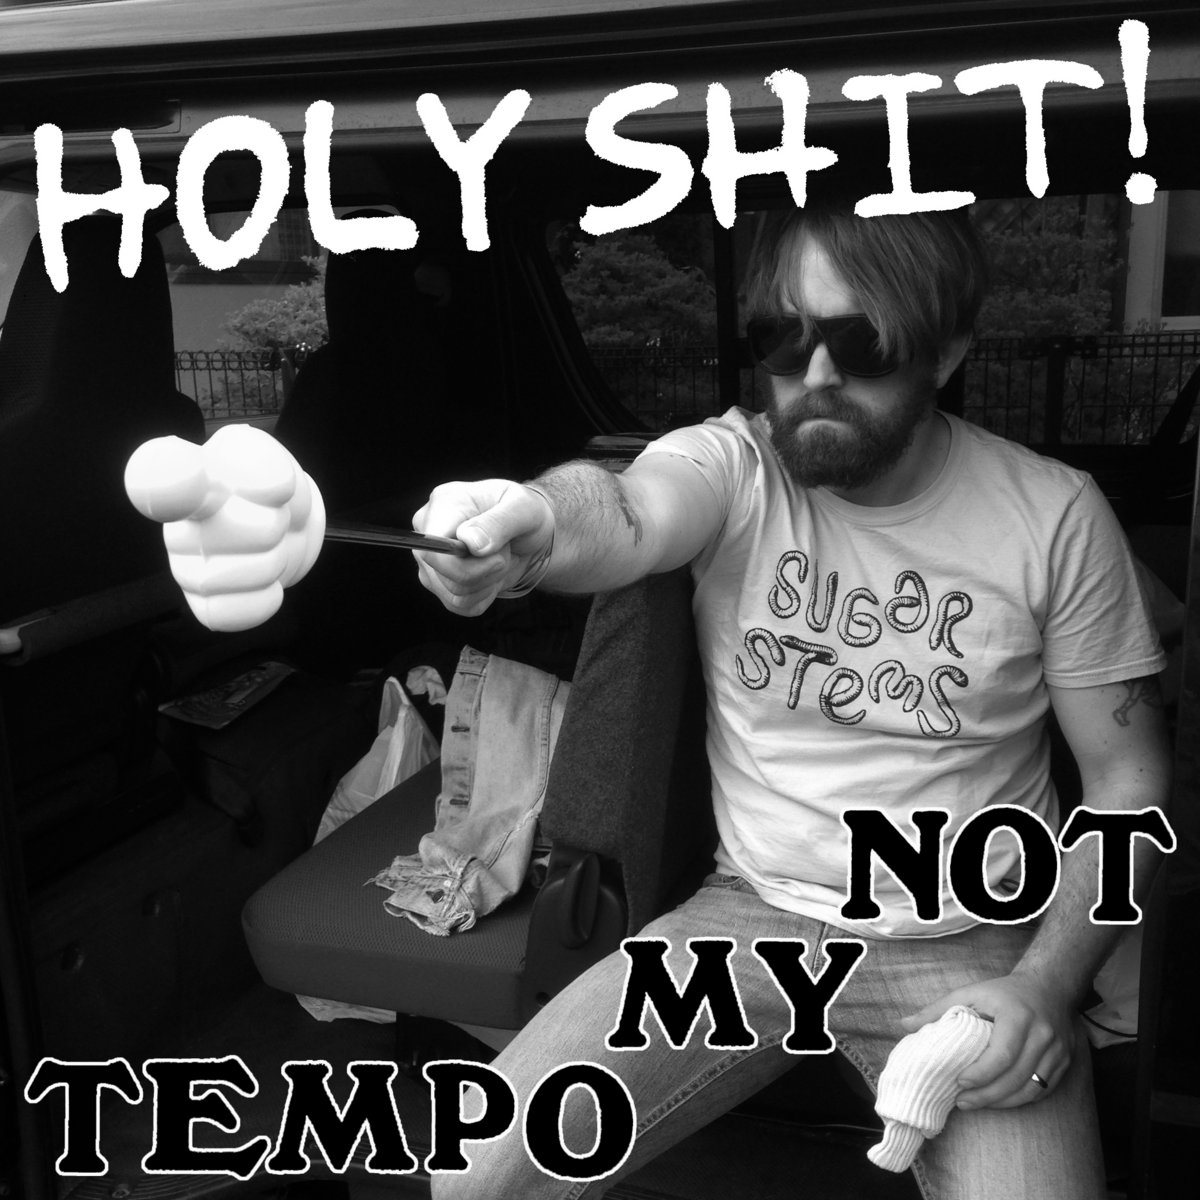 Not My Fucking Tempo not my tempo | holy shit!